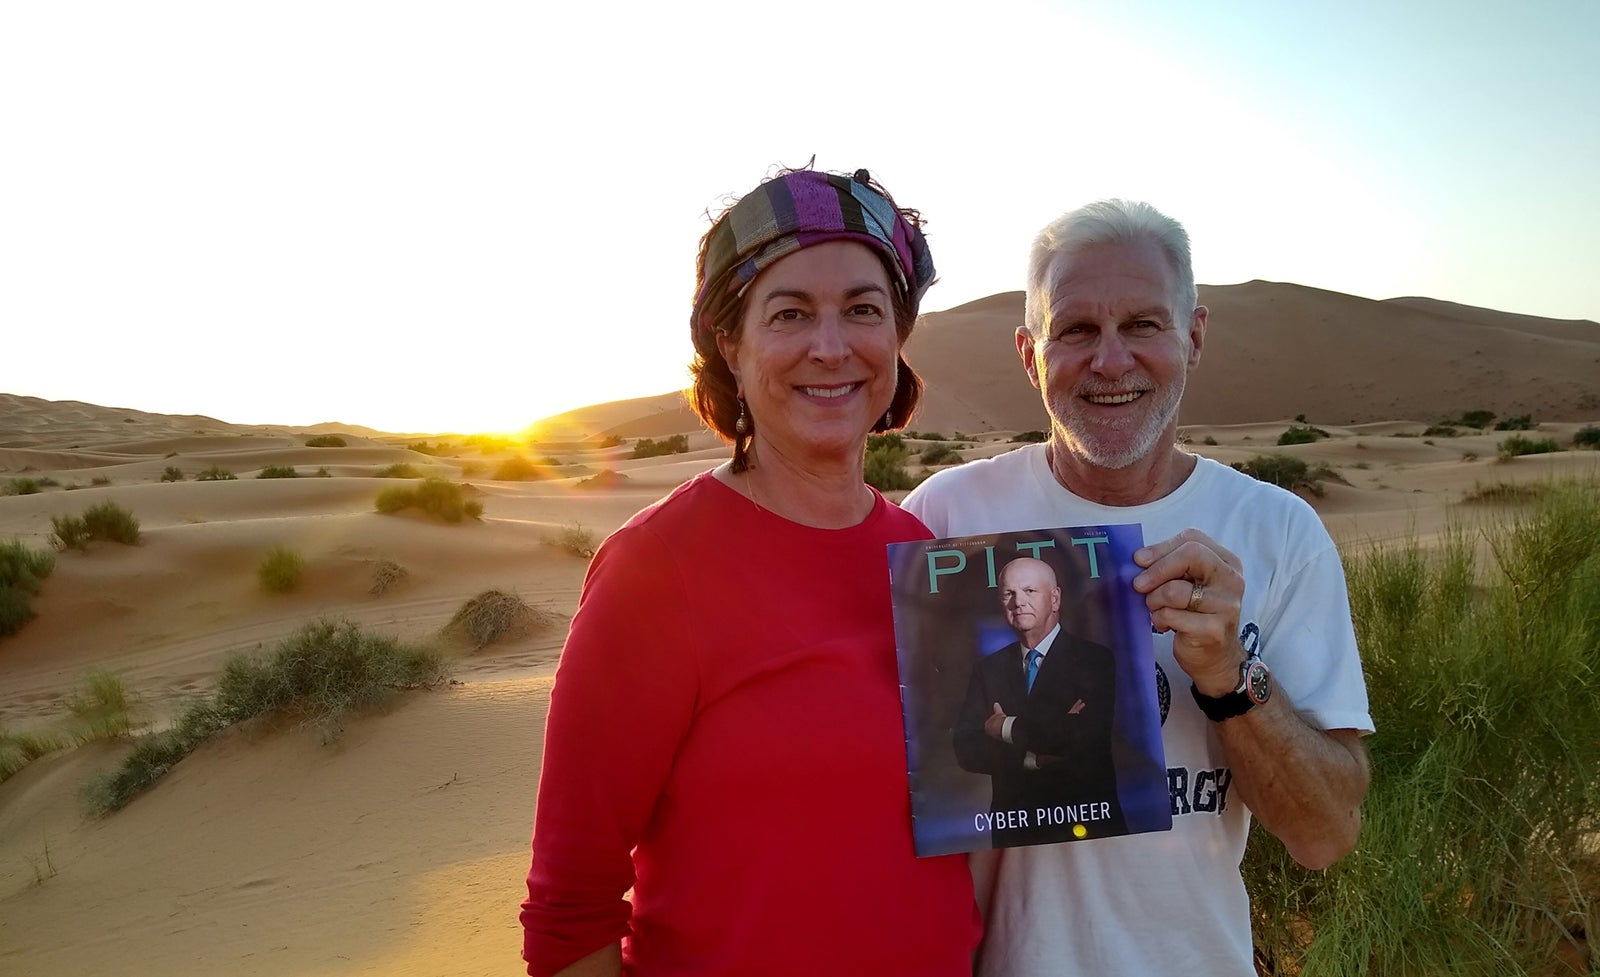 woman in red shirt and headband and man in white University of Pittsburgh T-shirt hold Pitt Magazine Fall 2019 issue as the sun goes down on sandy desert landscape